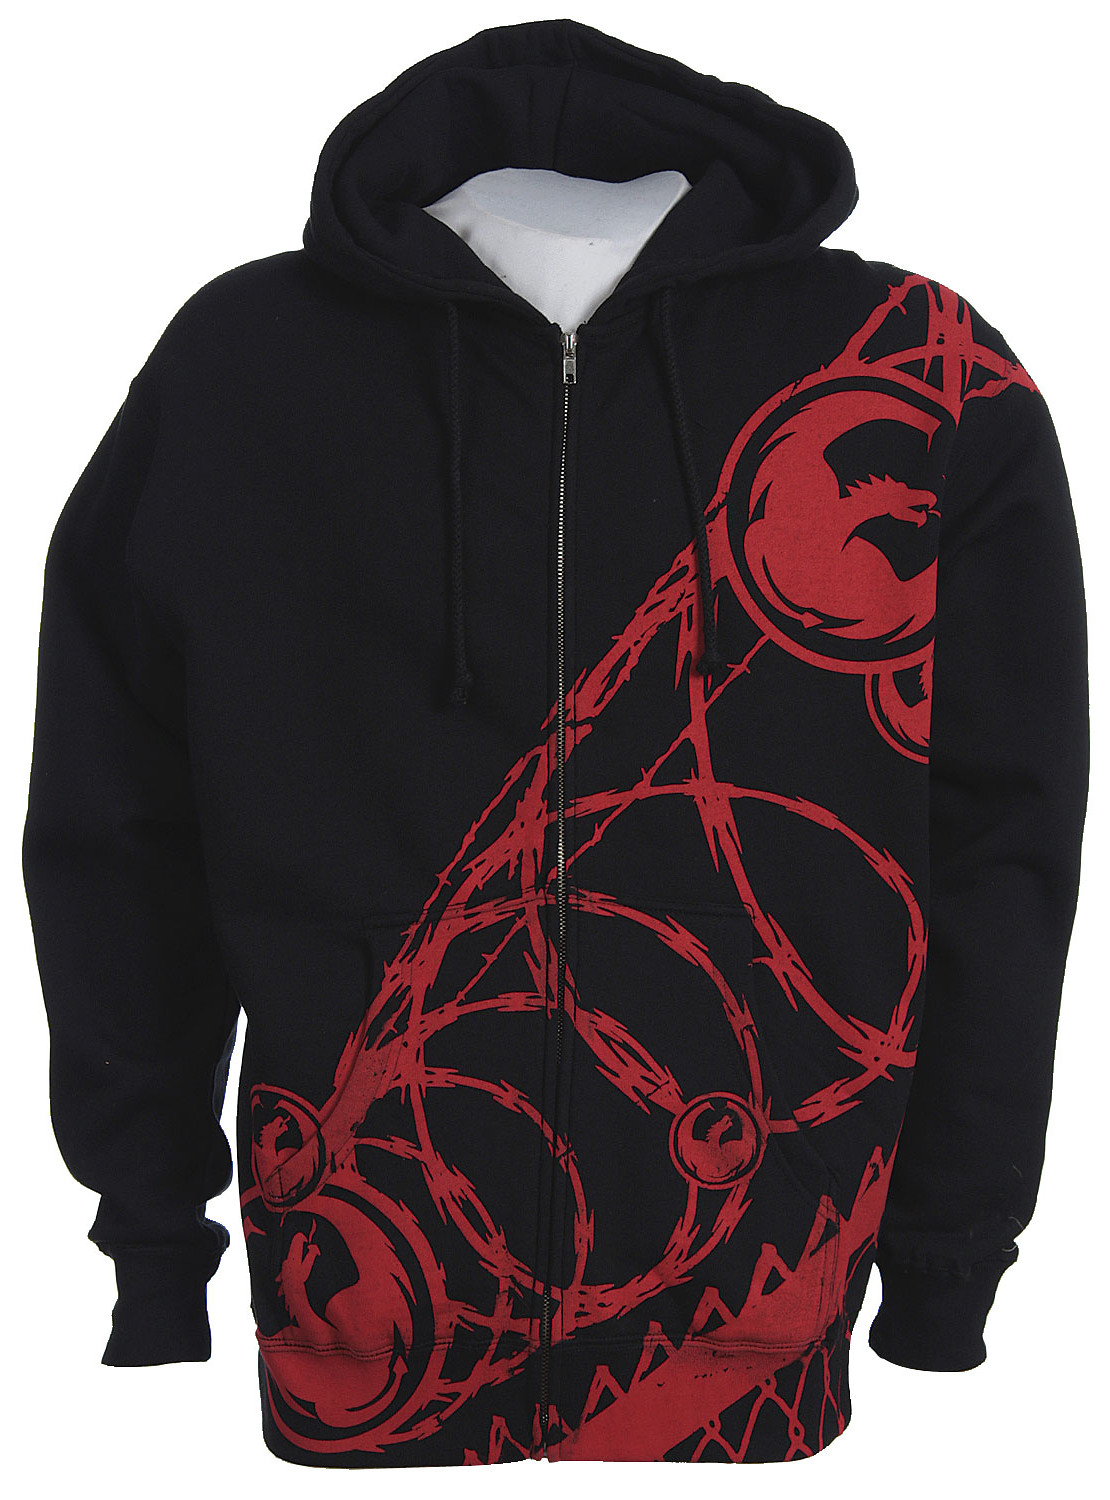 Dragon The Joint Zip Hoodie Black  dra-the-joint-zhd-bk-08.jpg